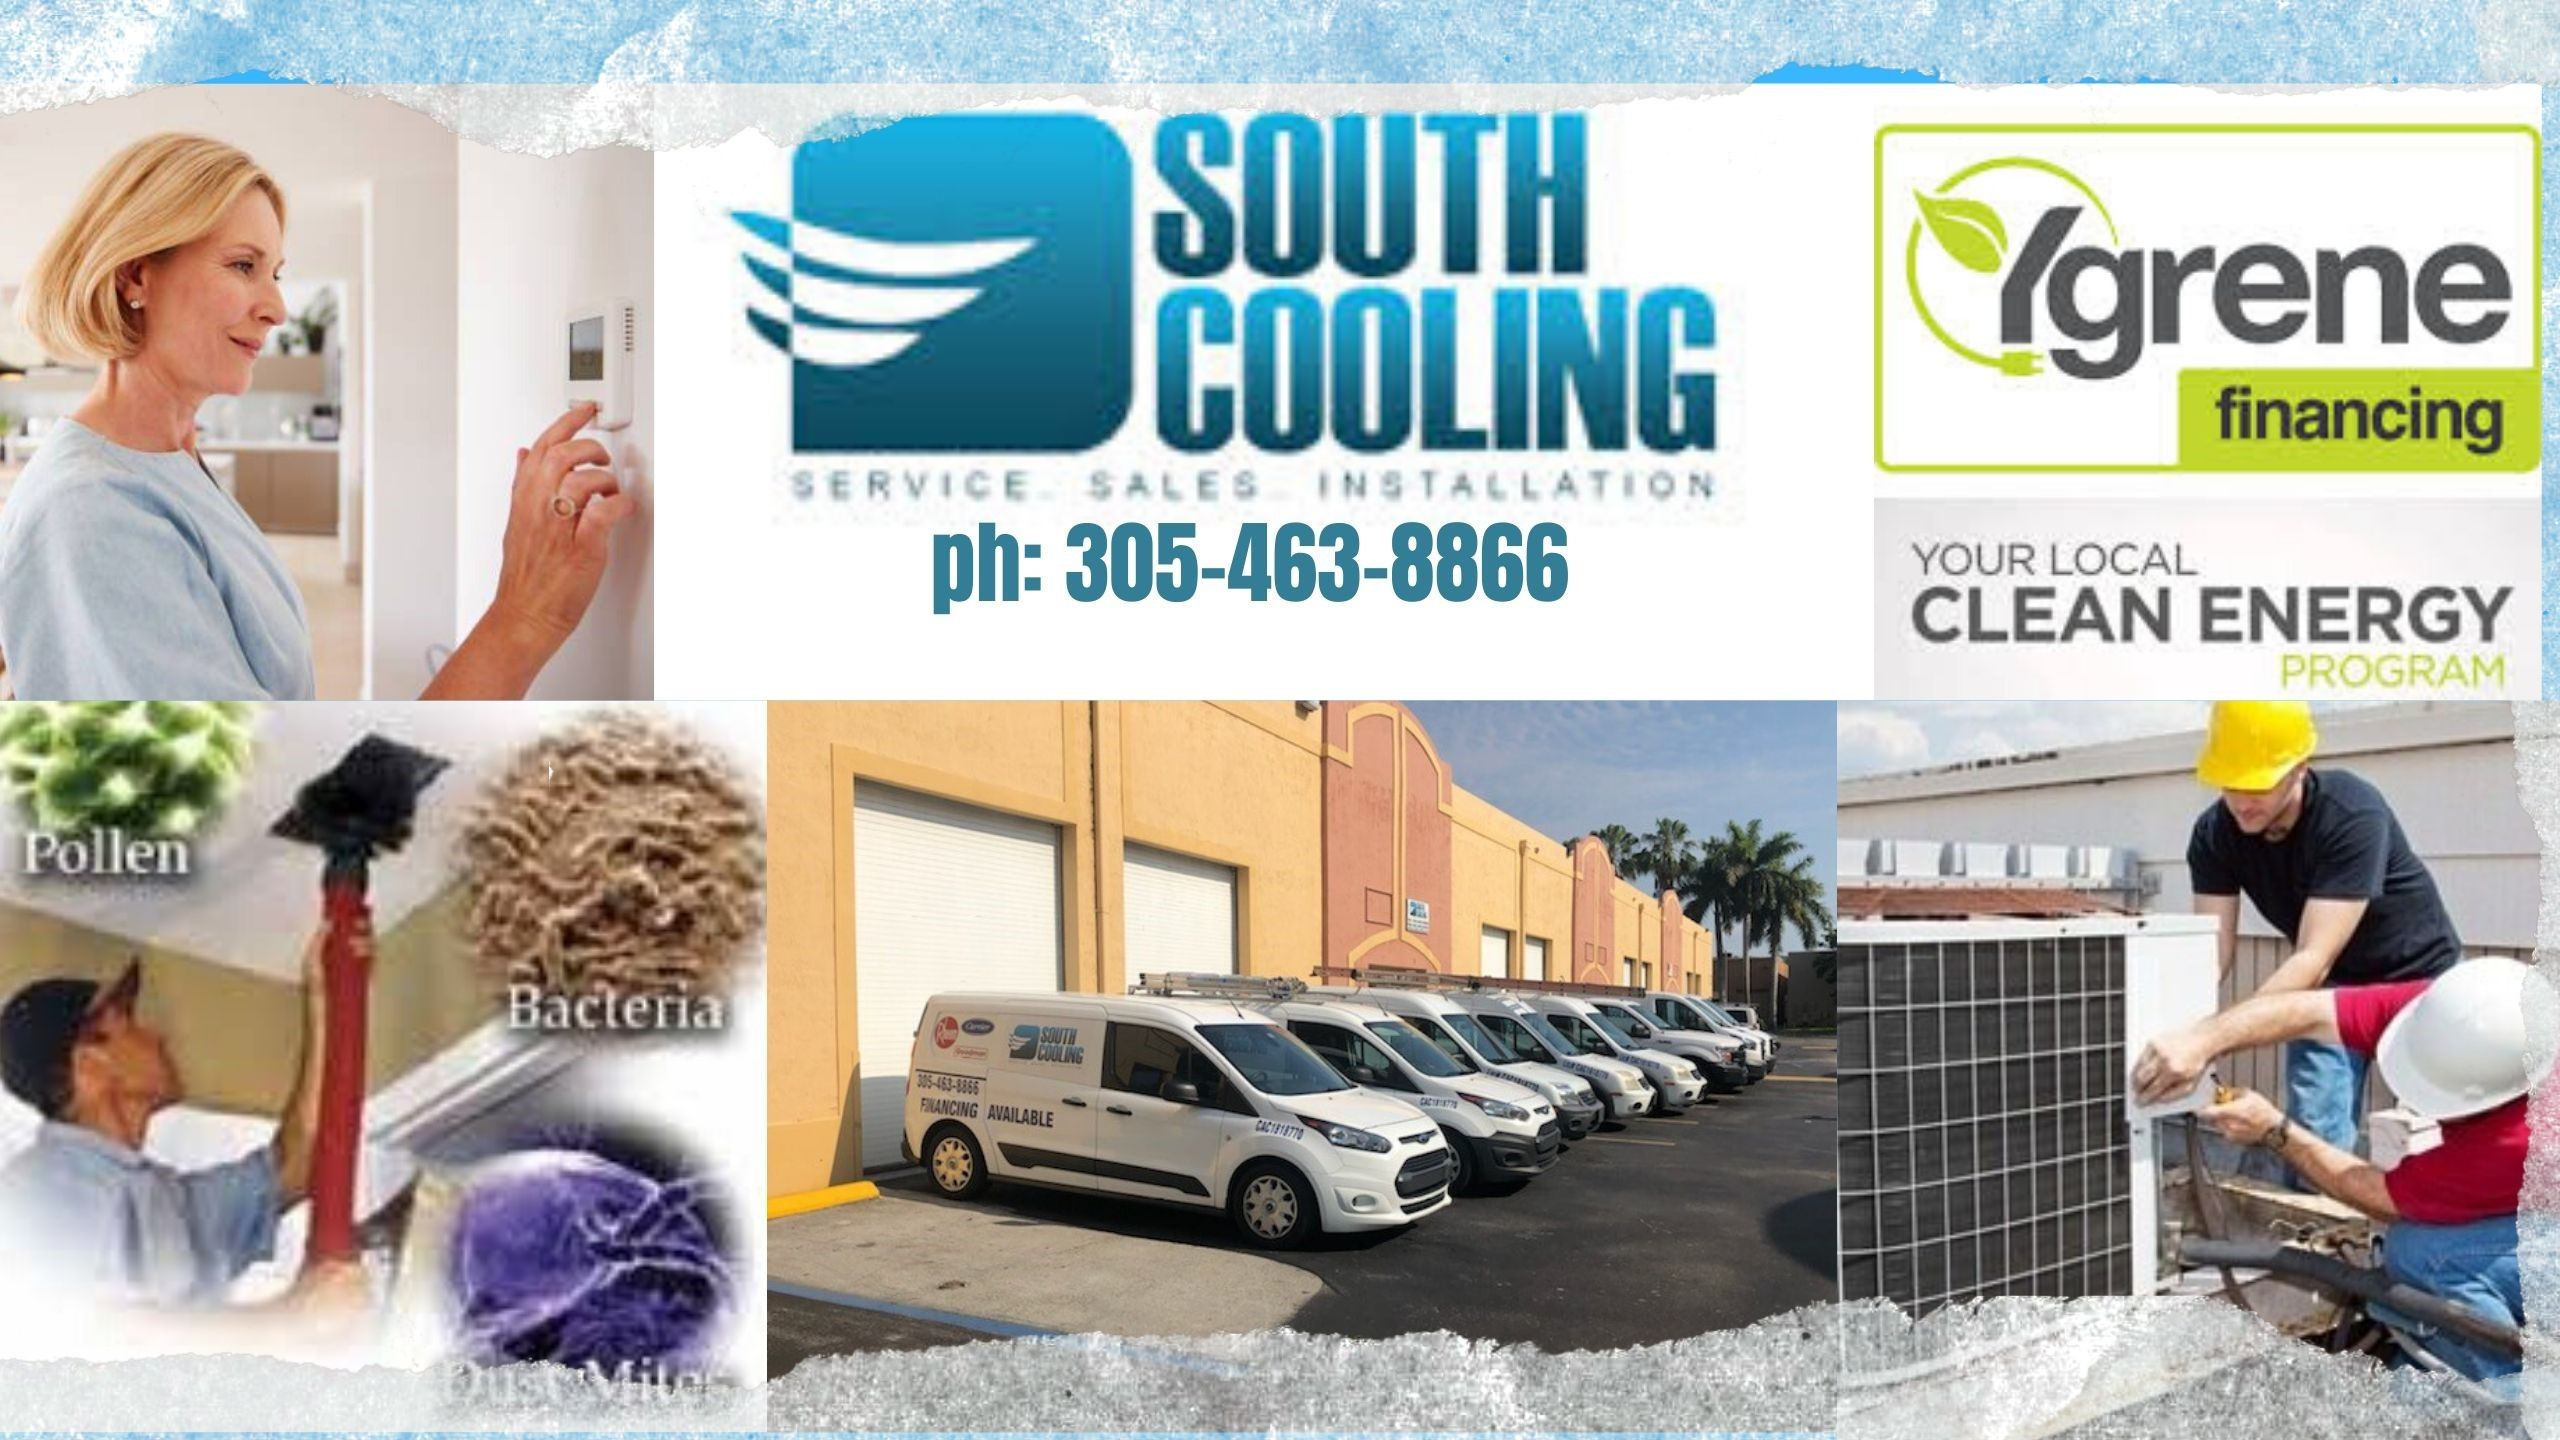 South Cooling LLC in 2020 Hvac company, Air conditioning